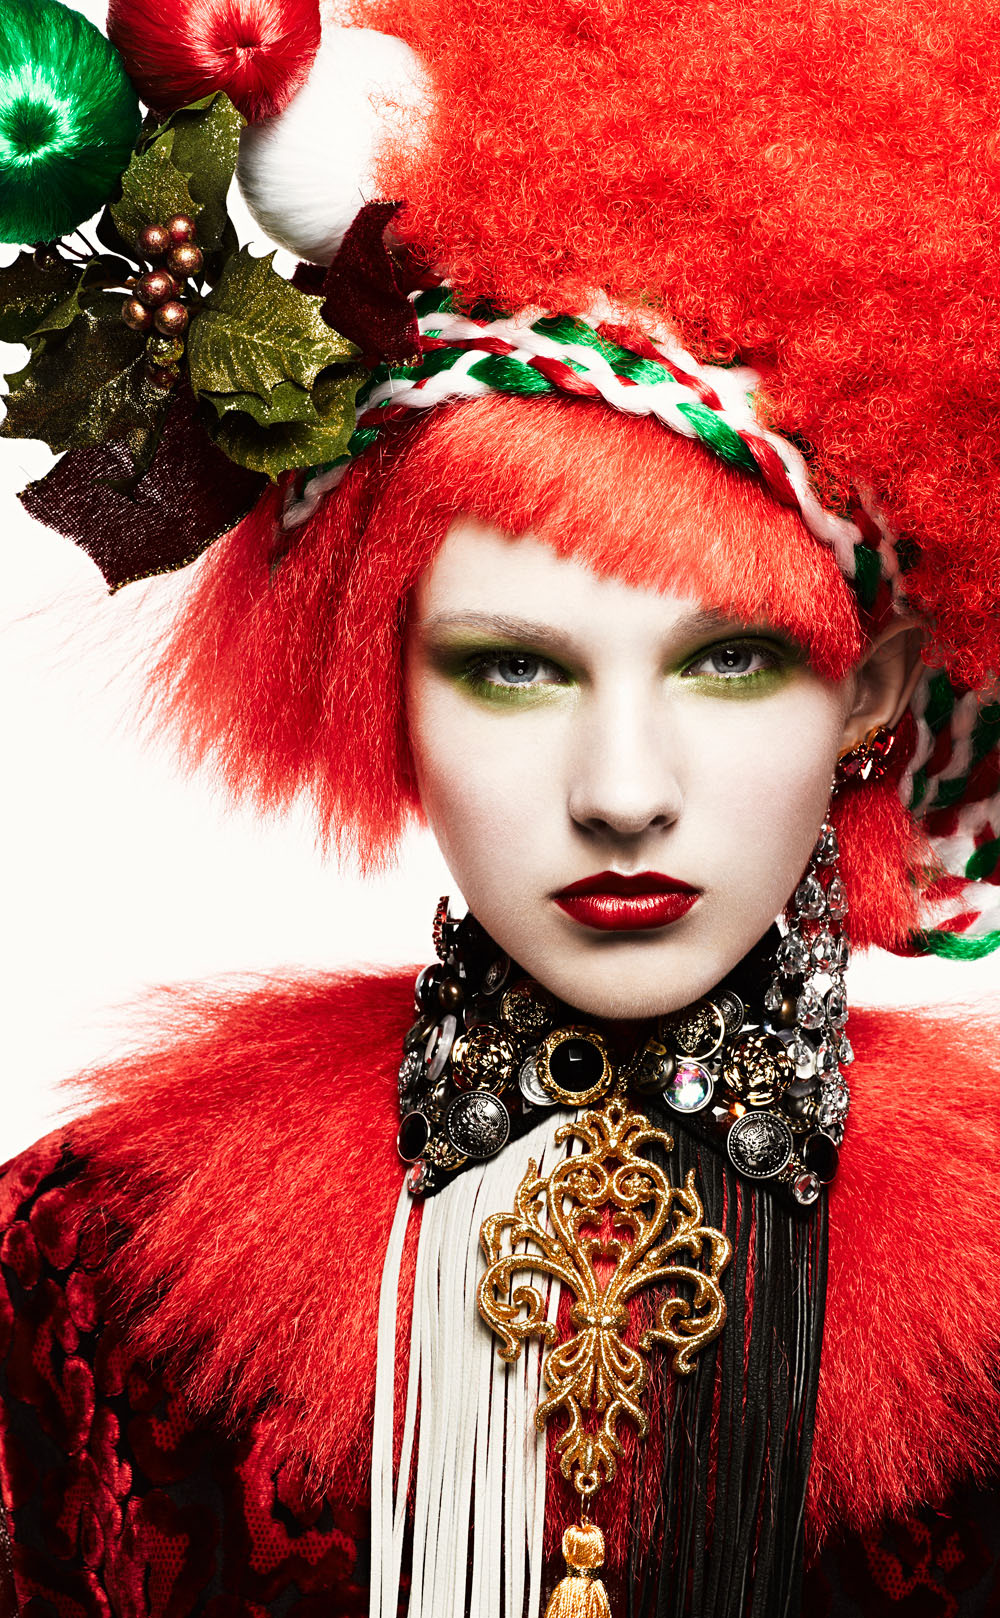 Makeup Show: December Offers Tokyo Style And Makeup Shows, Plus Even